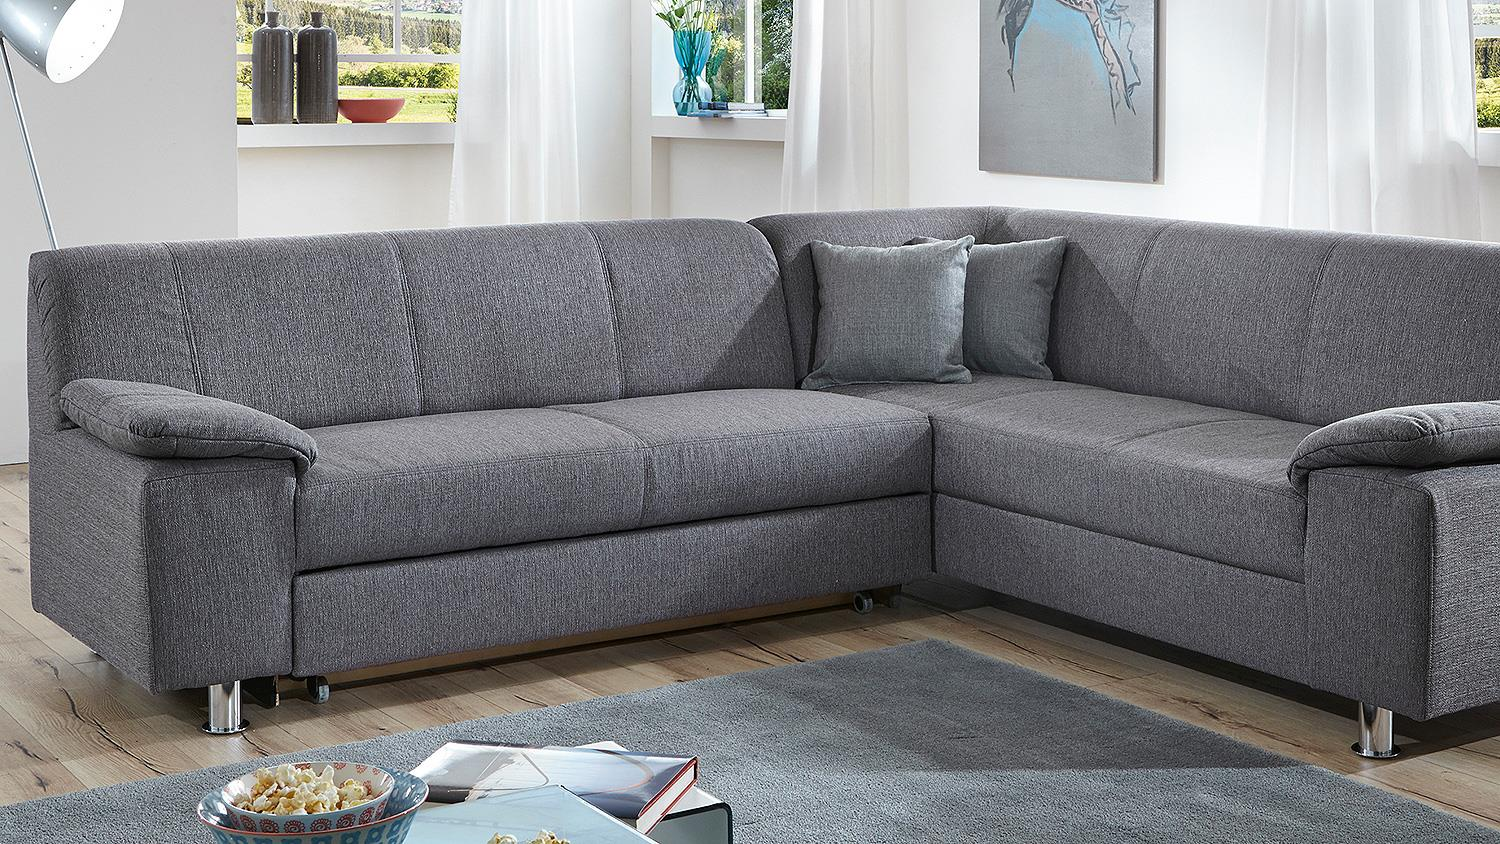 Couch mit bettfunktion schlafsofa sofa 2 sitzer bettsofa for Ecksofa couch